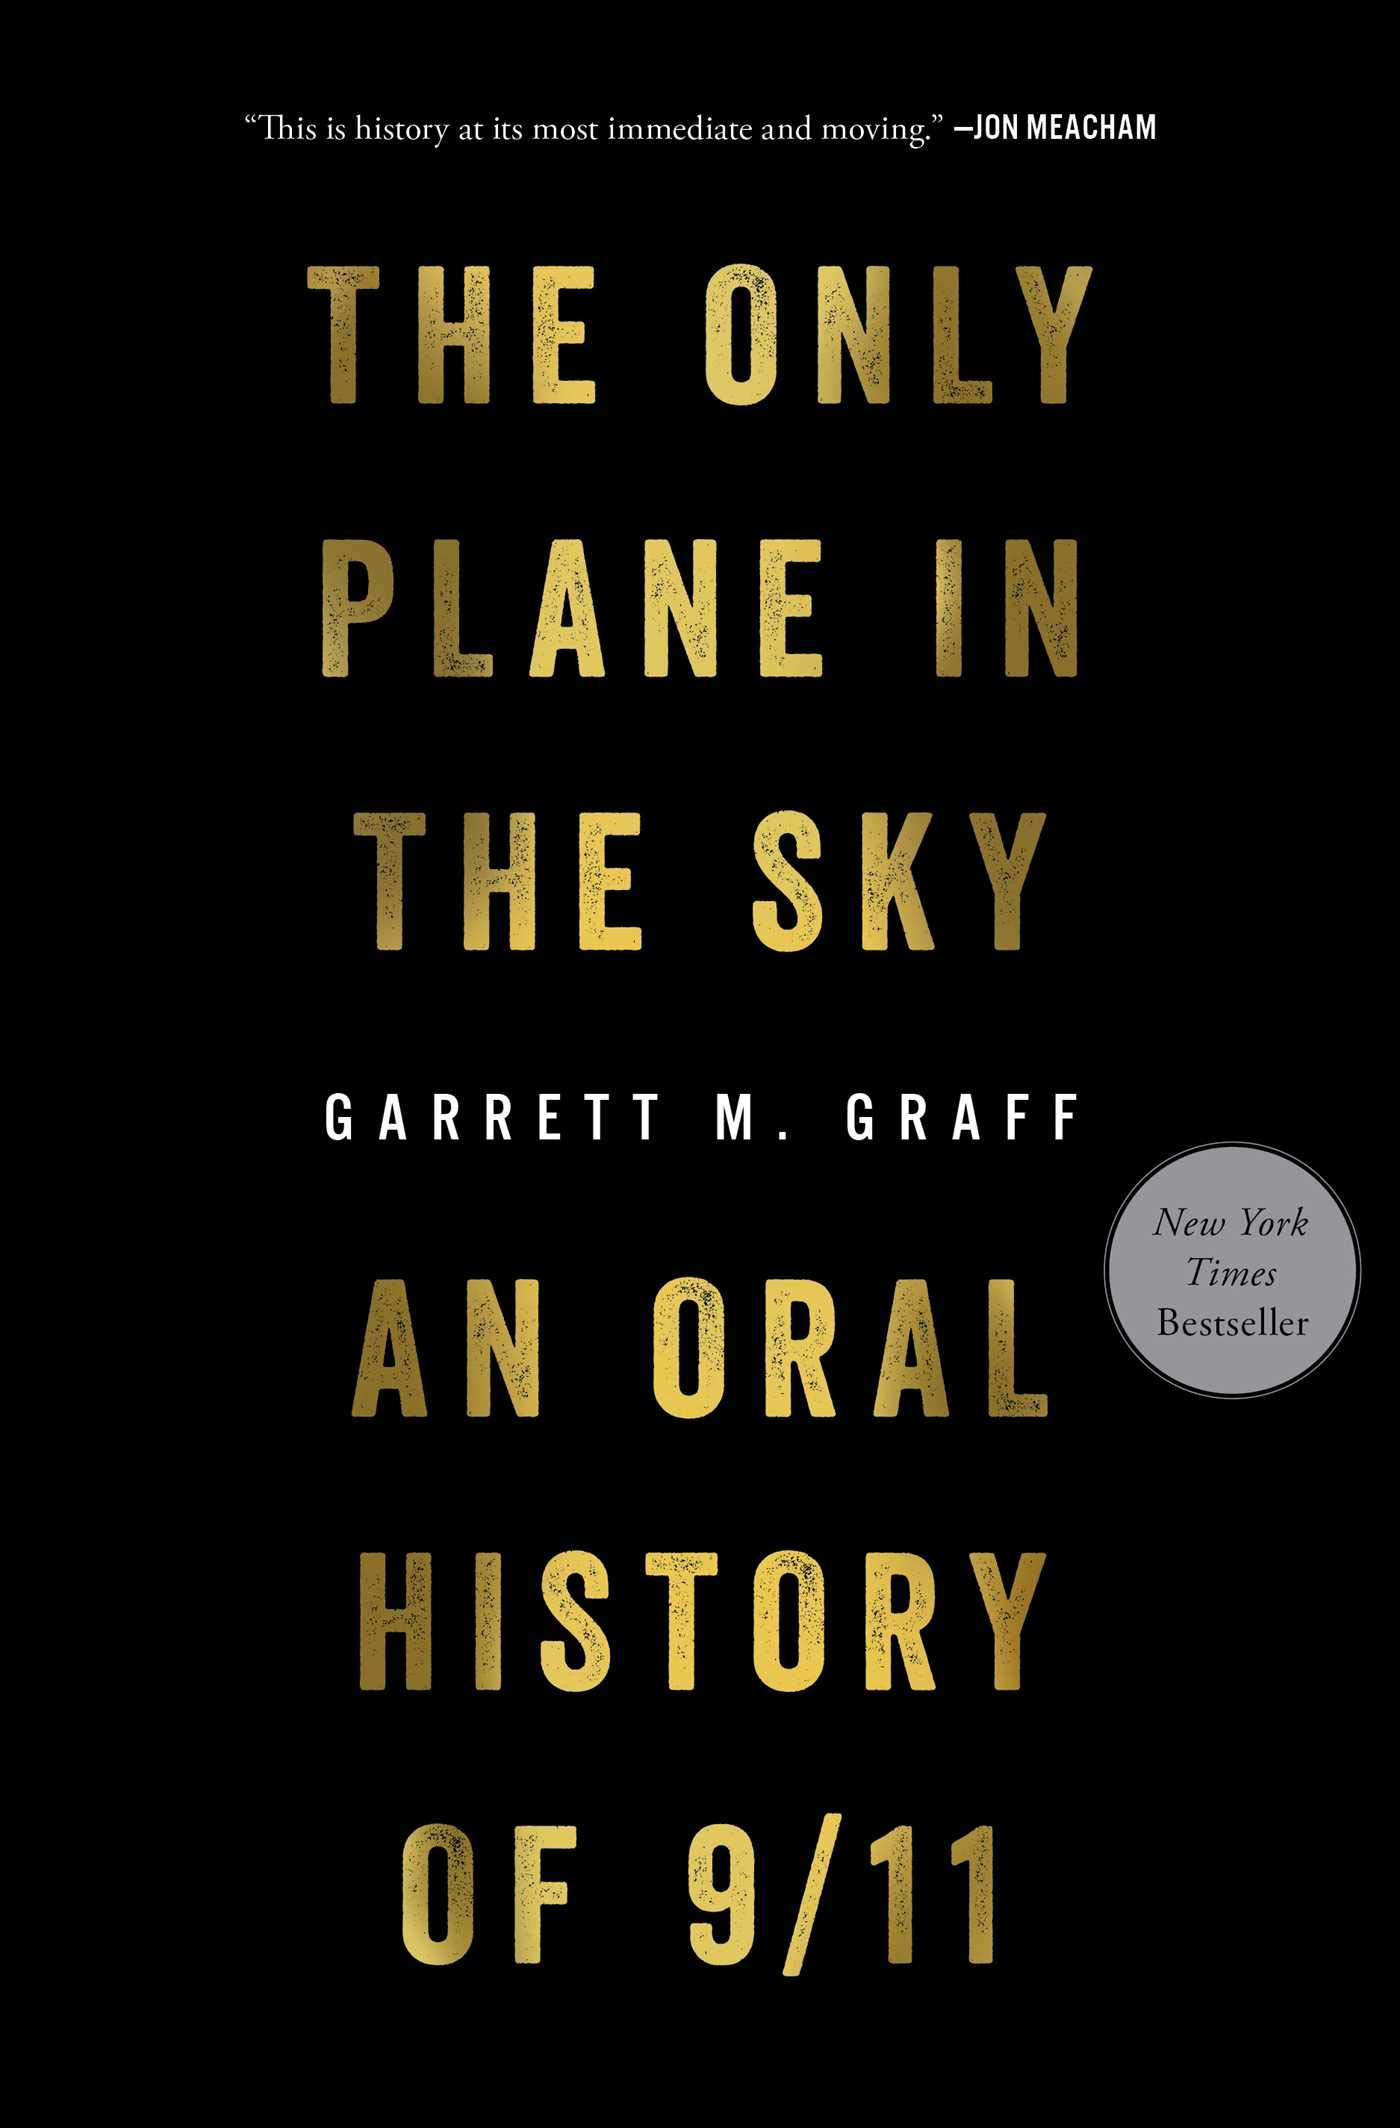 The Only Plane in the Sky: An Oral History of 9/11: Graff, Garrett M.:  9781501182204: Amazon.com: Books